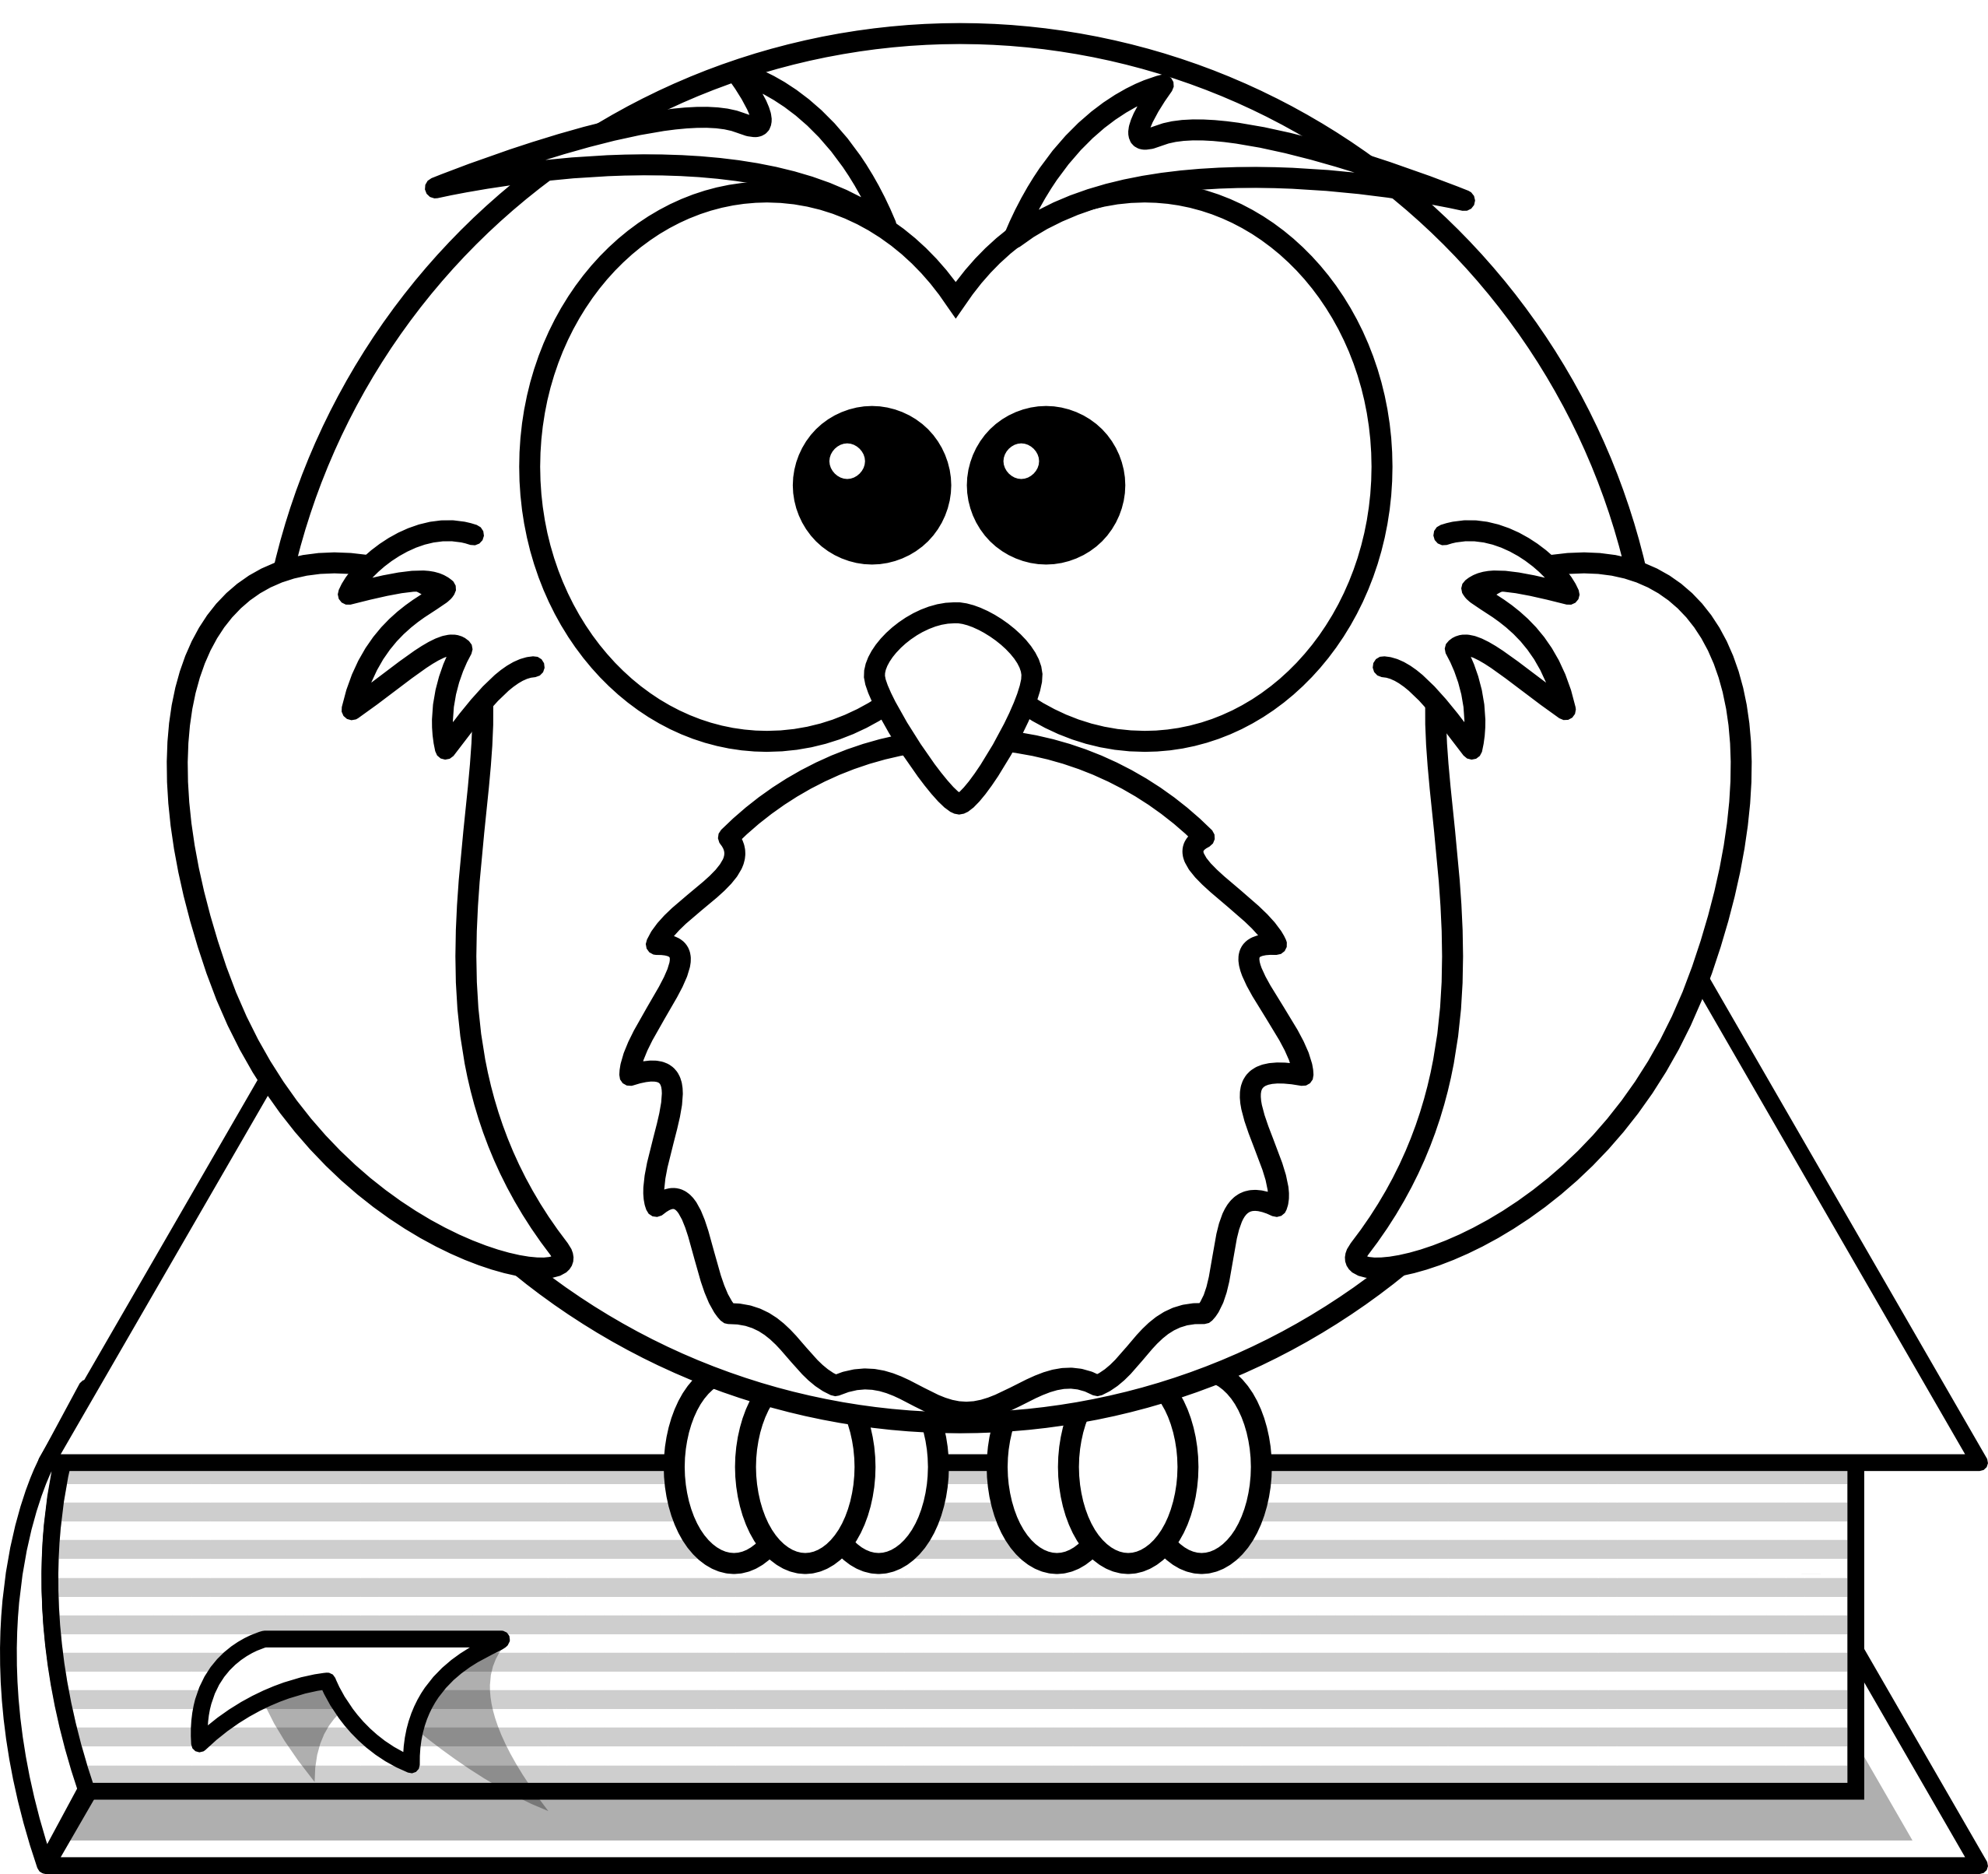 Pi drawing black and white. Free cartoon owls download